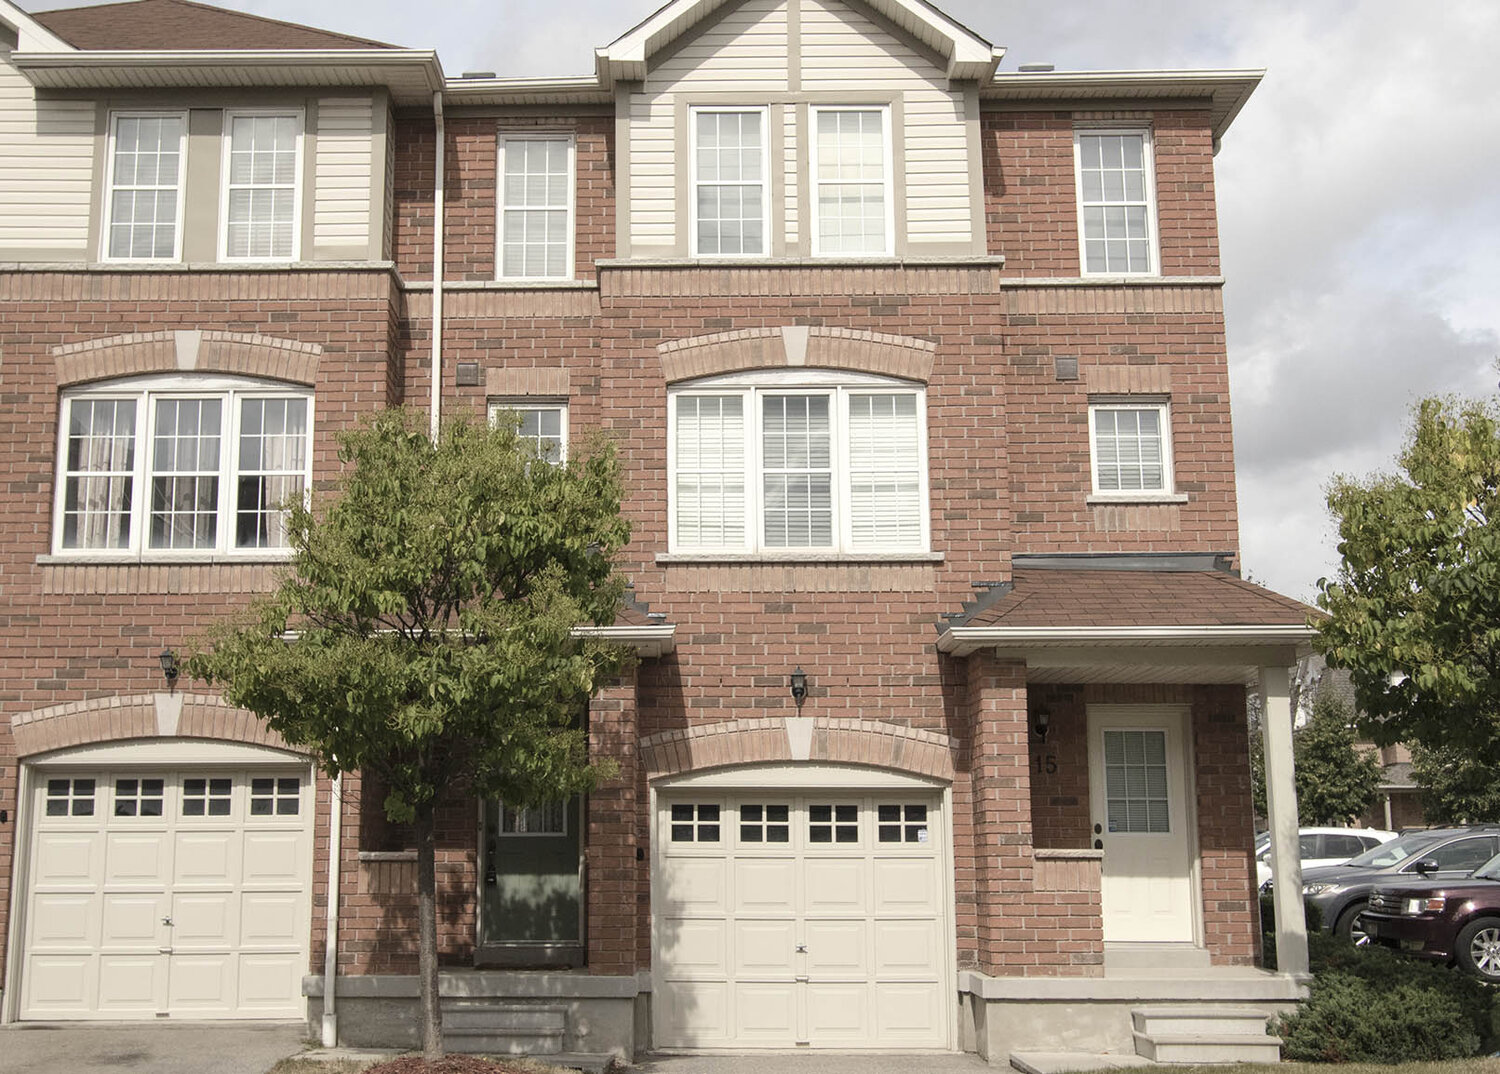 #13- 3045 Breakwater Court, Mississauga - For Sale $659,000 | SOLD for 98% of asking.